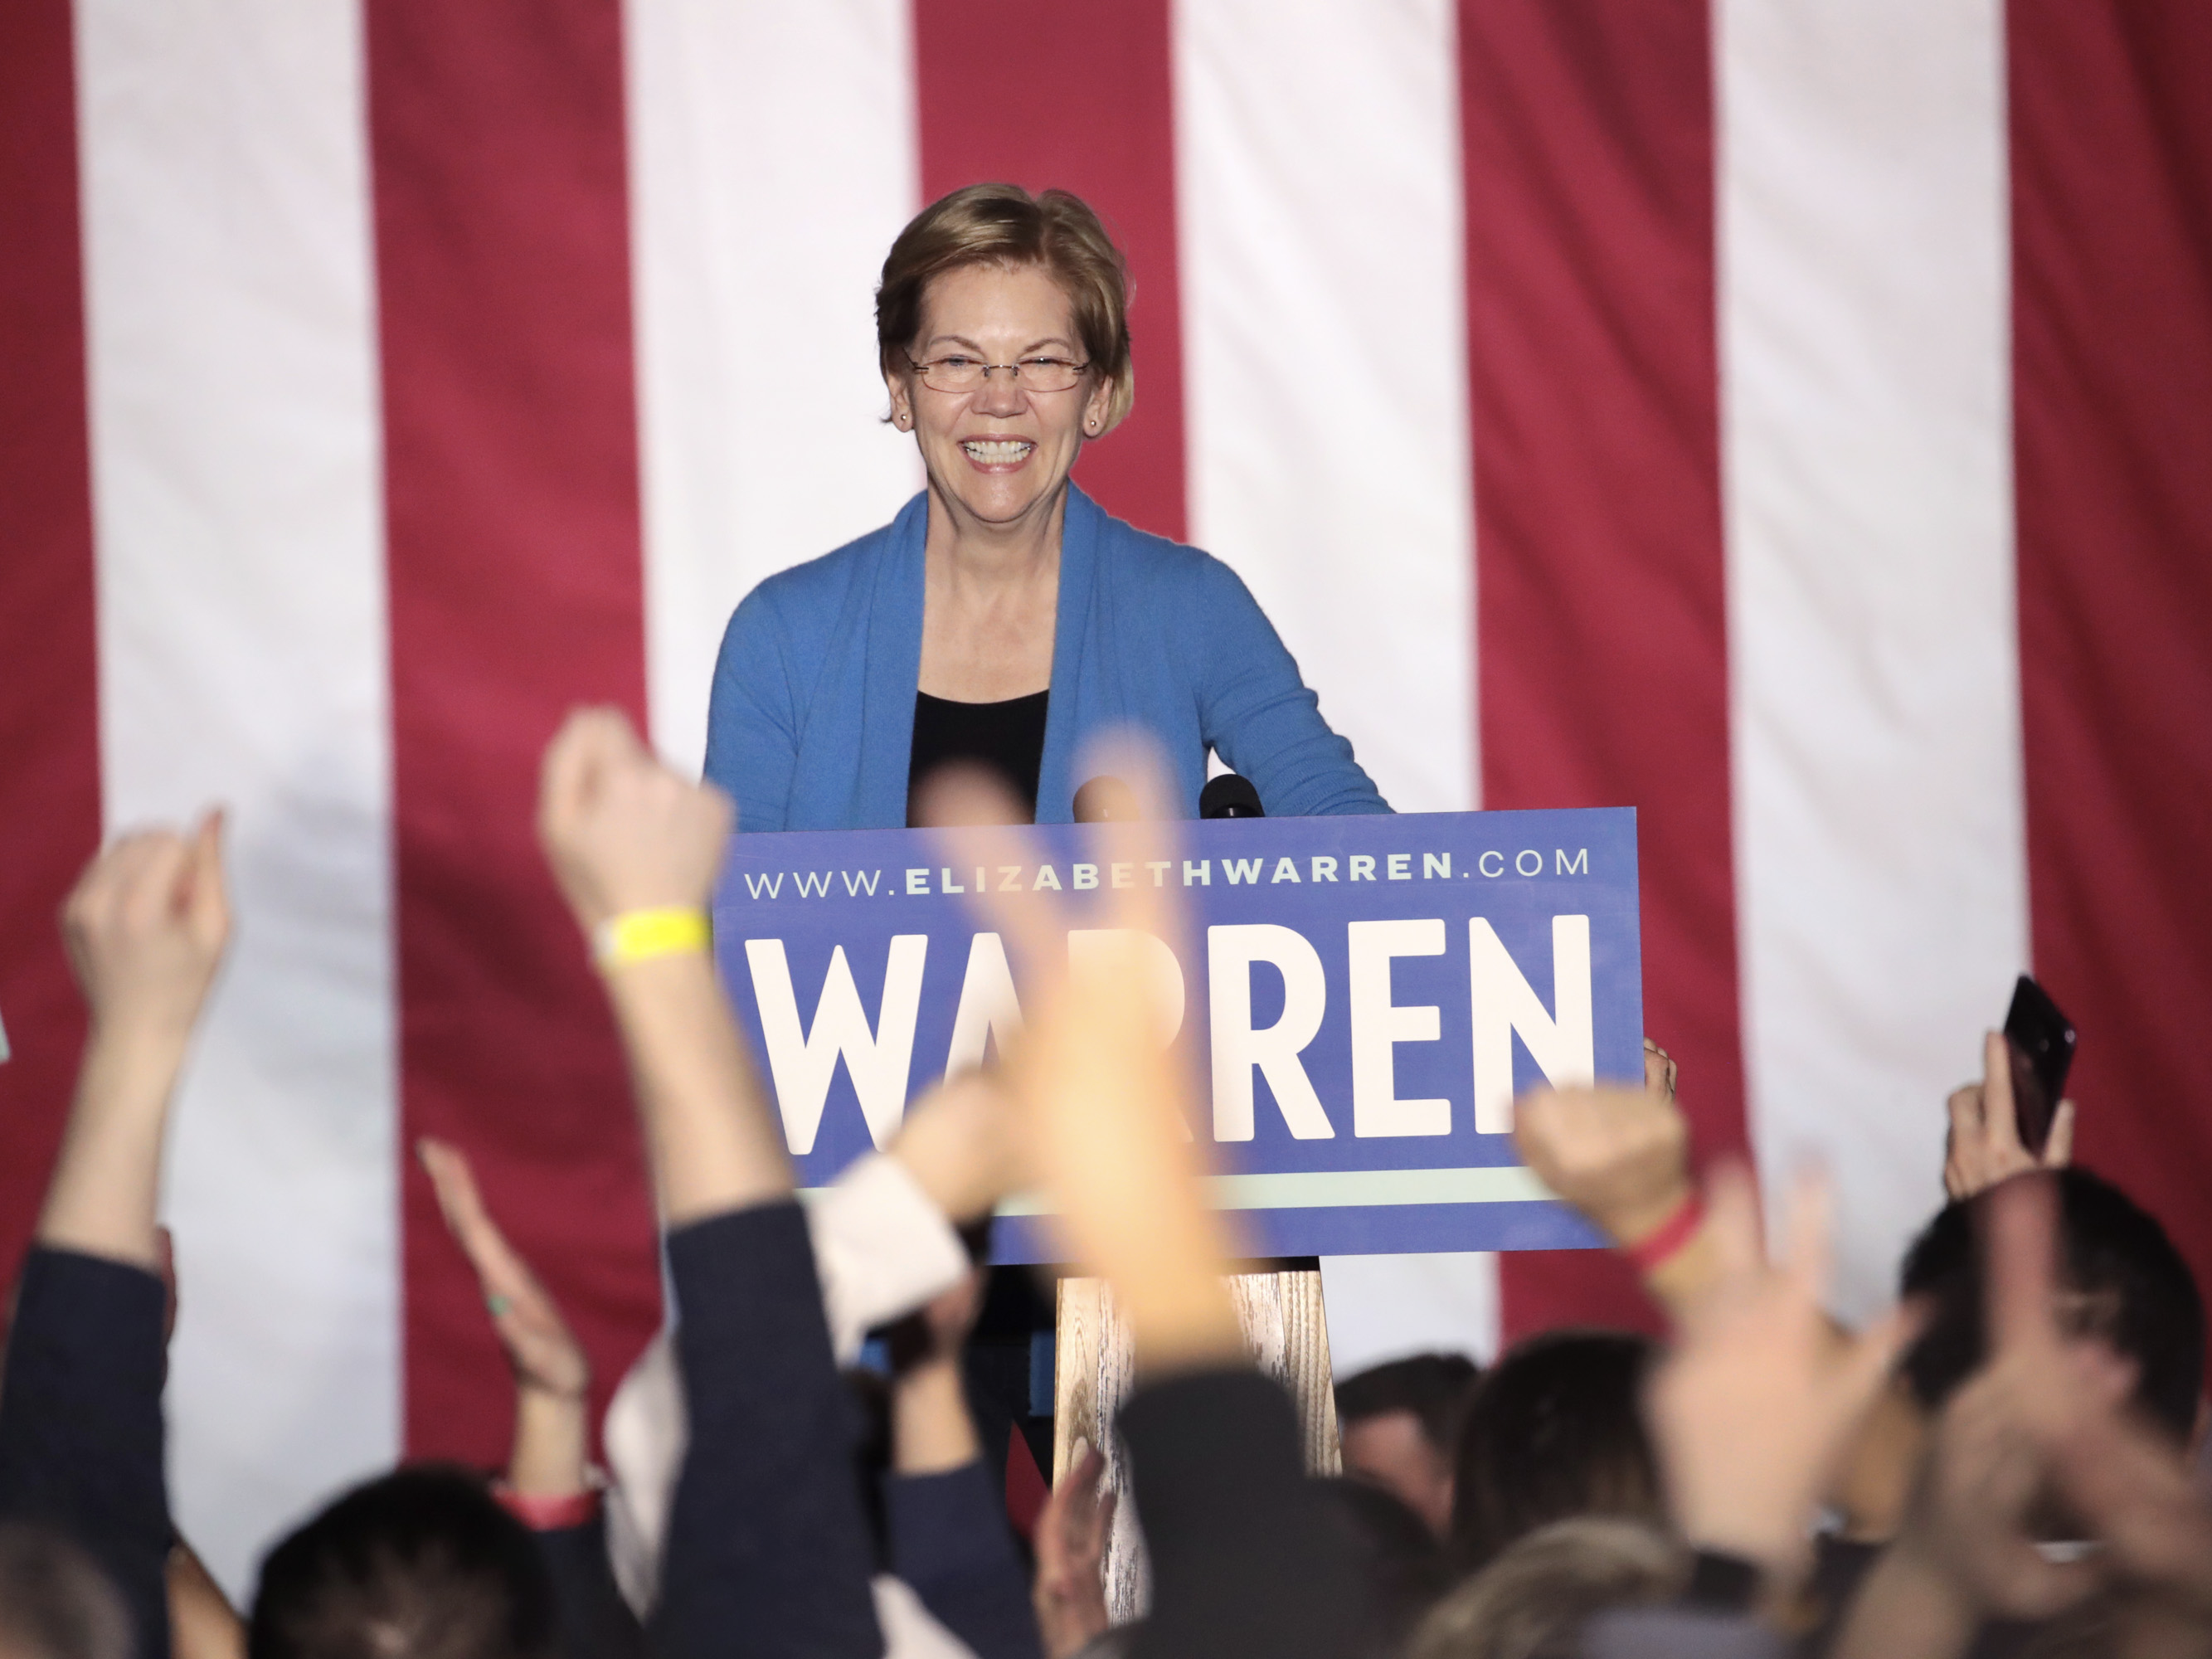 The numbers are clear: Bernie Sanders' best chance at topping Joe Biden may hinge on Elizabeth Warren dropping out now